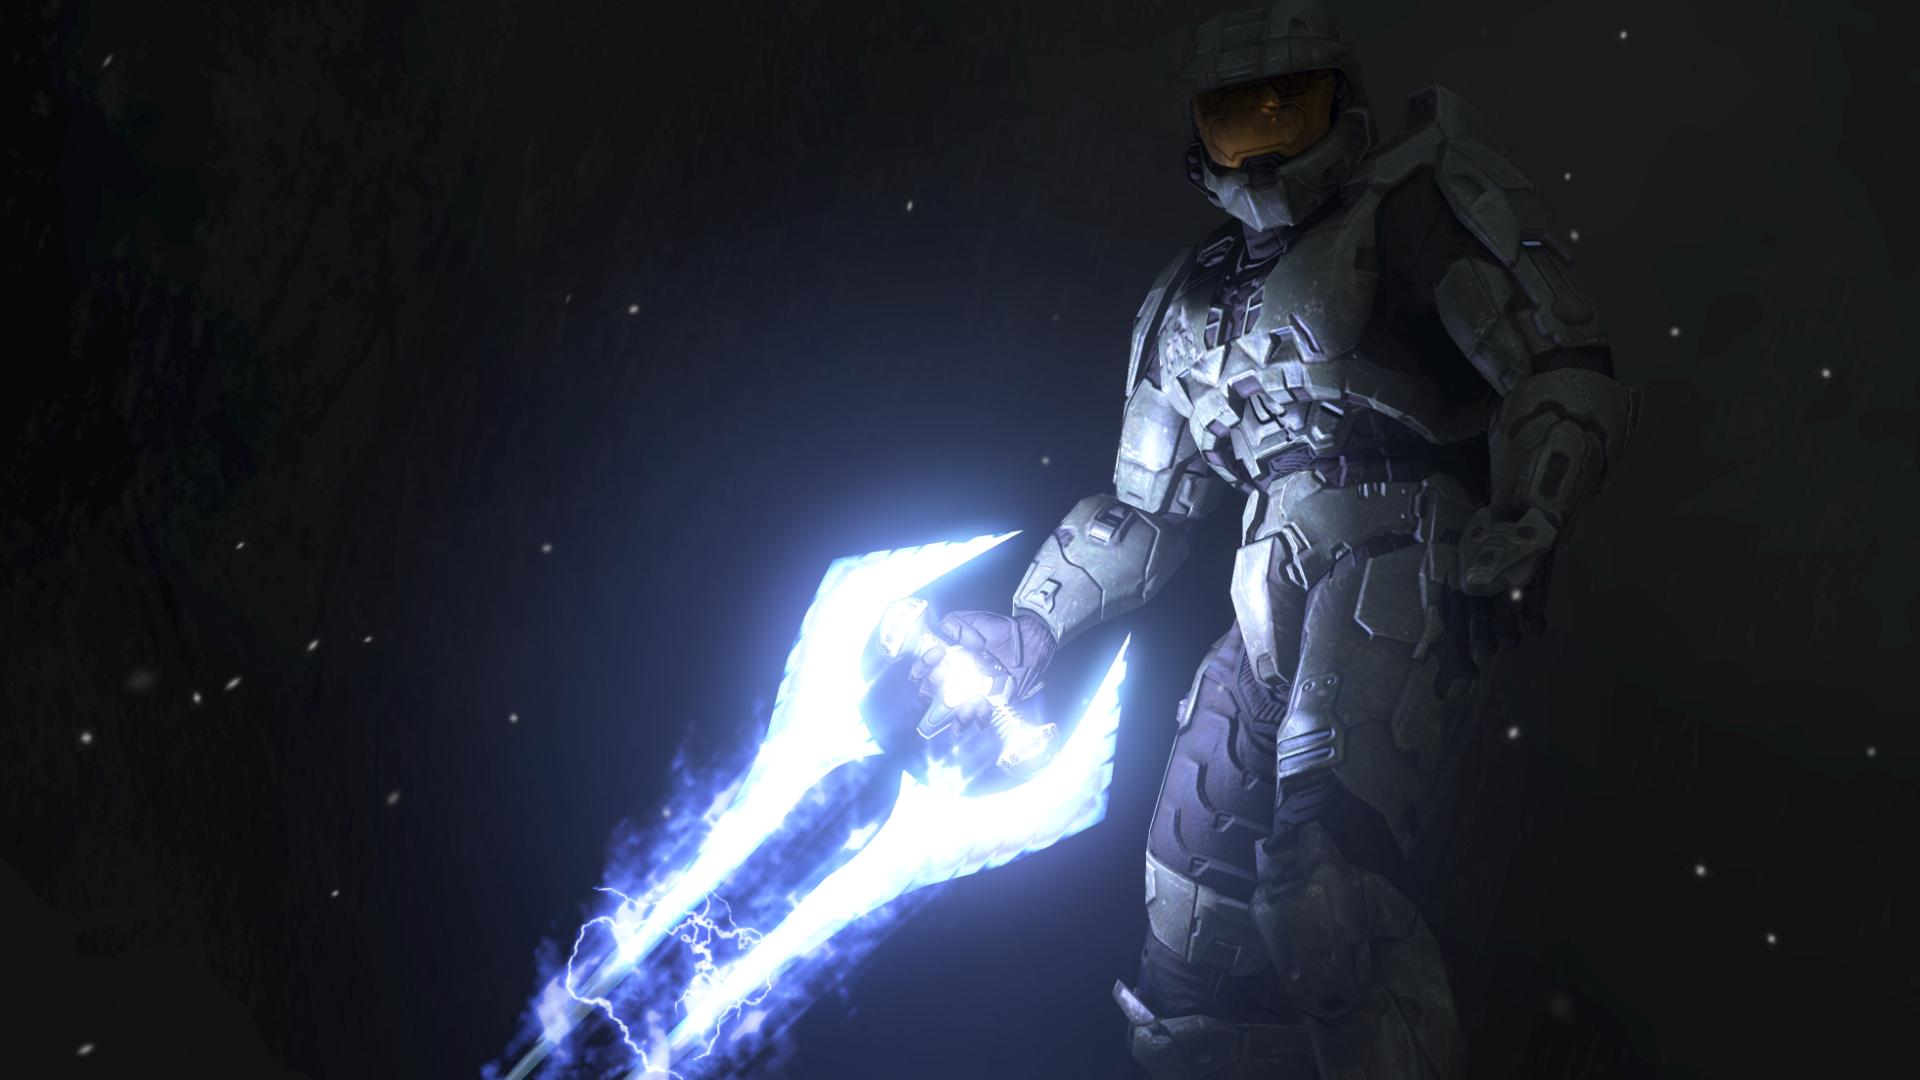 Wallpaper Abyss Explore the Collection Halo Video Game Halo 299353 1920x1080